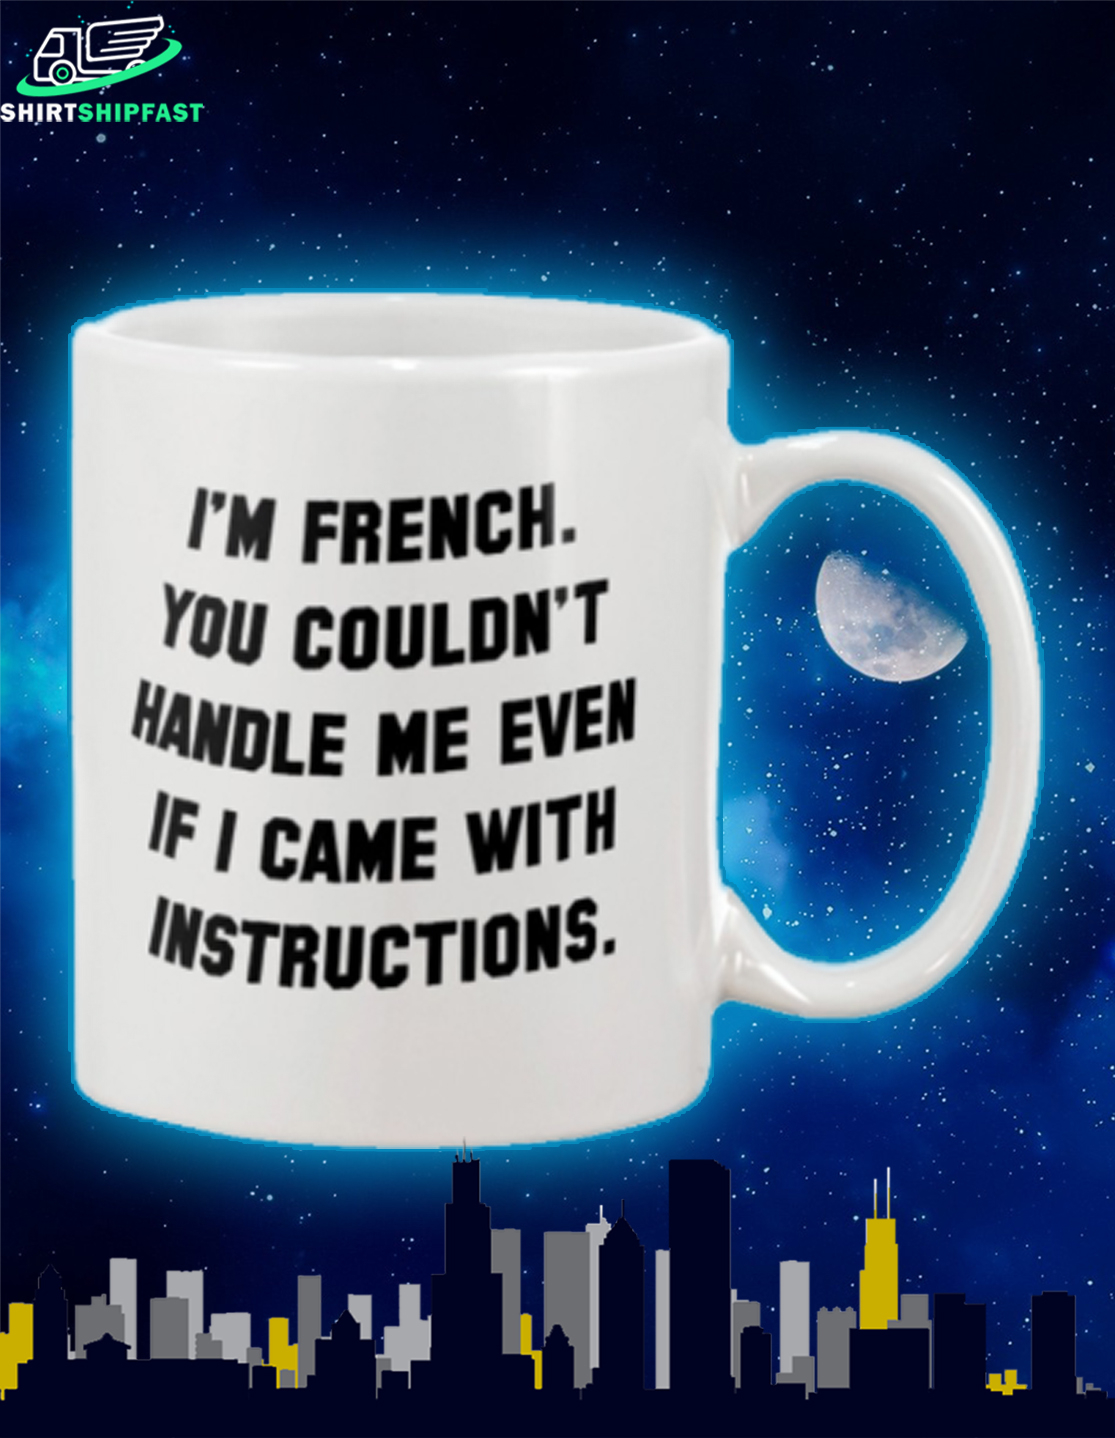 I'm French you couldn't handle me even if I came with intructions mug - Picture 2